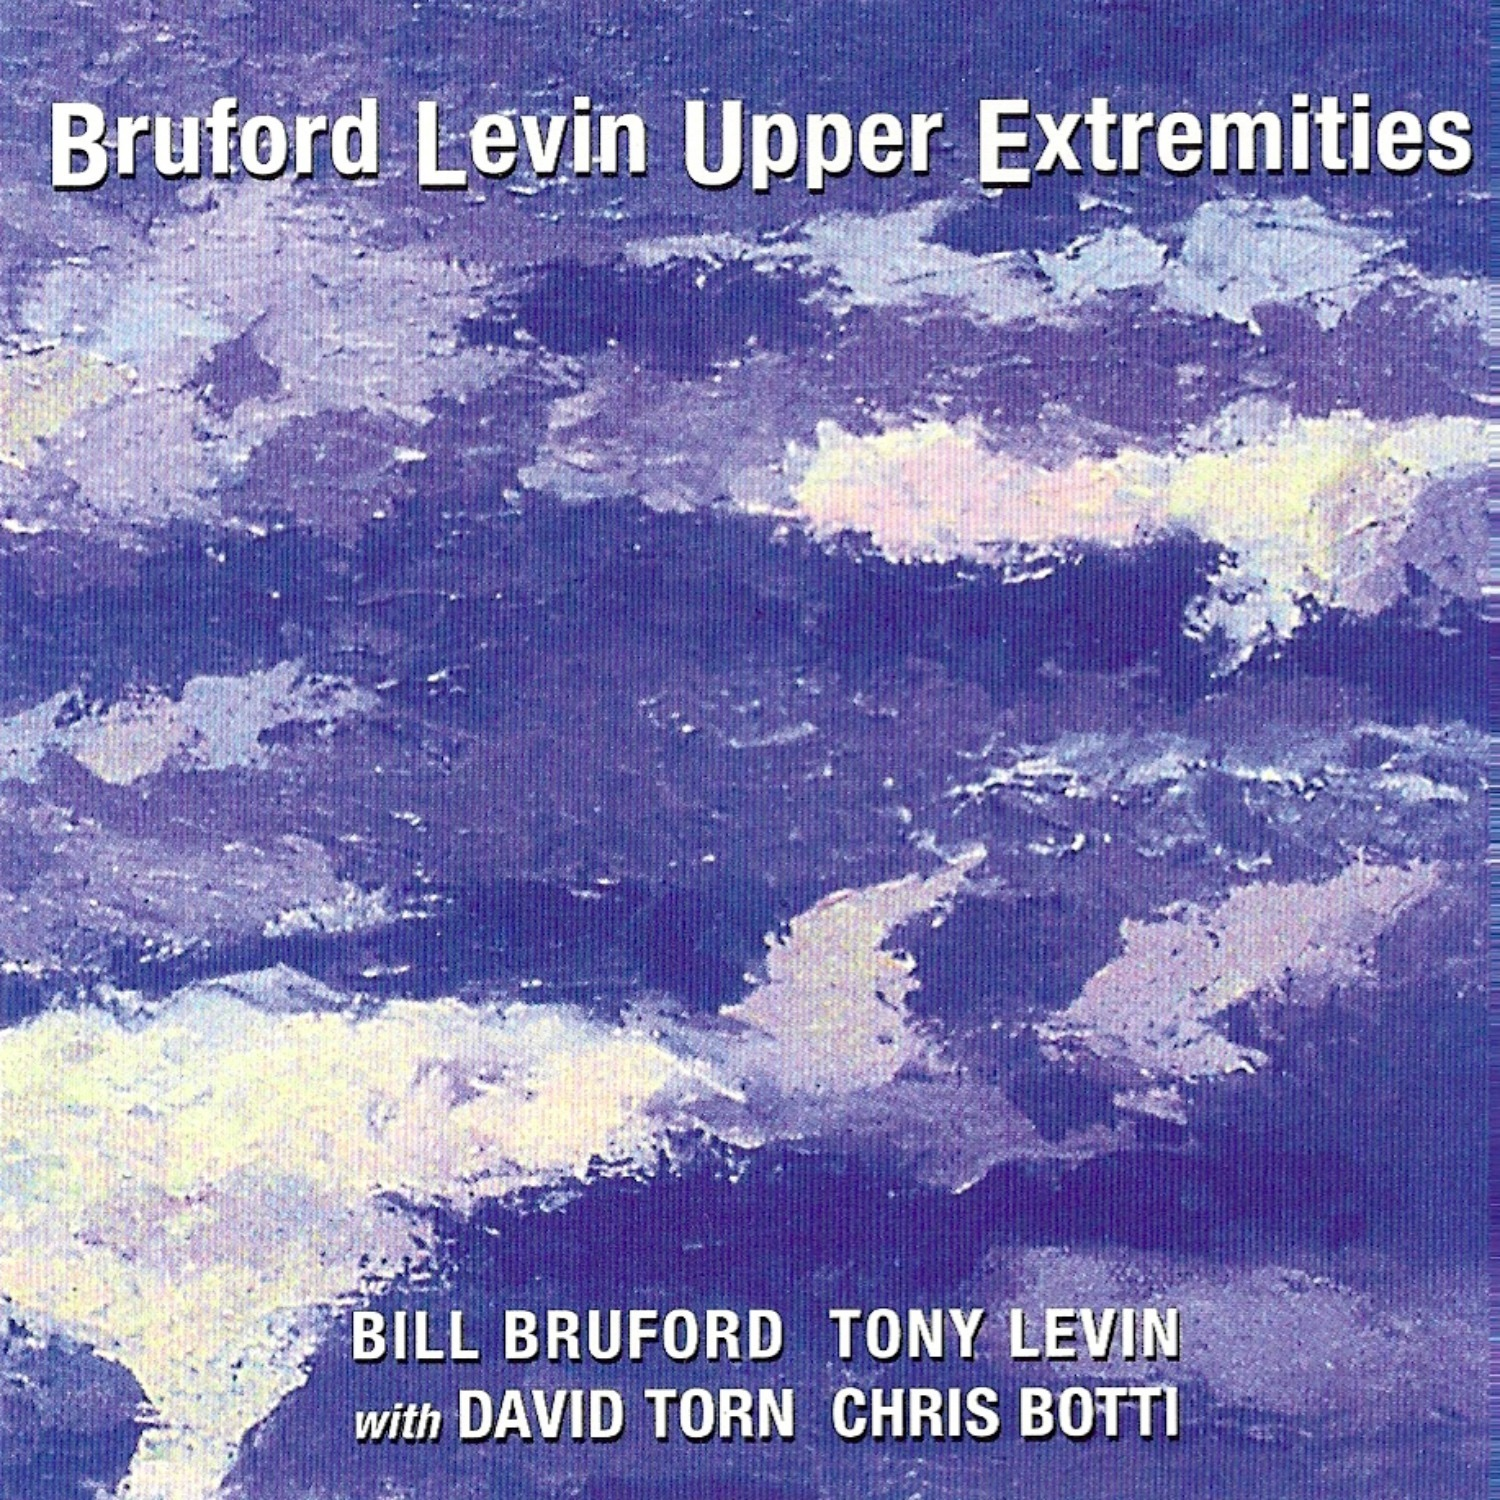 Bruford Levin Upper Extremities (feat. David Torn & Chris Botti)